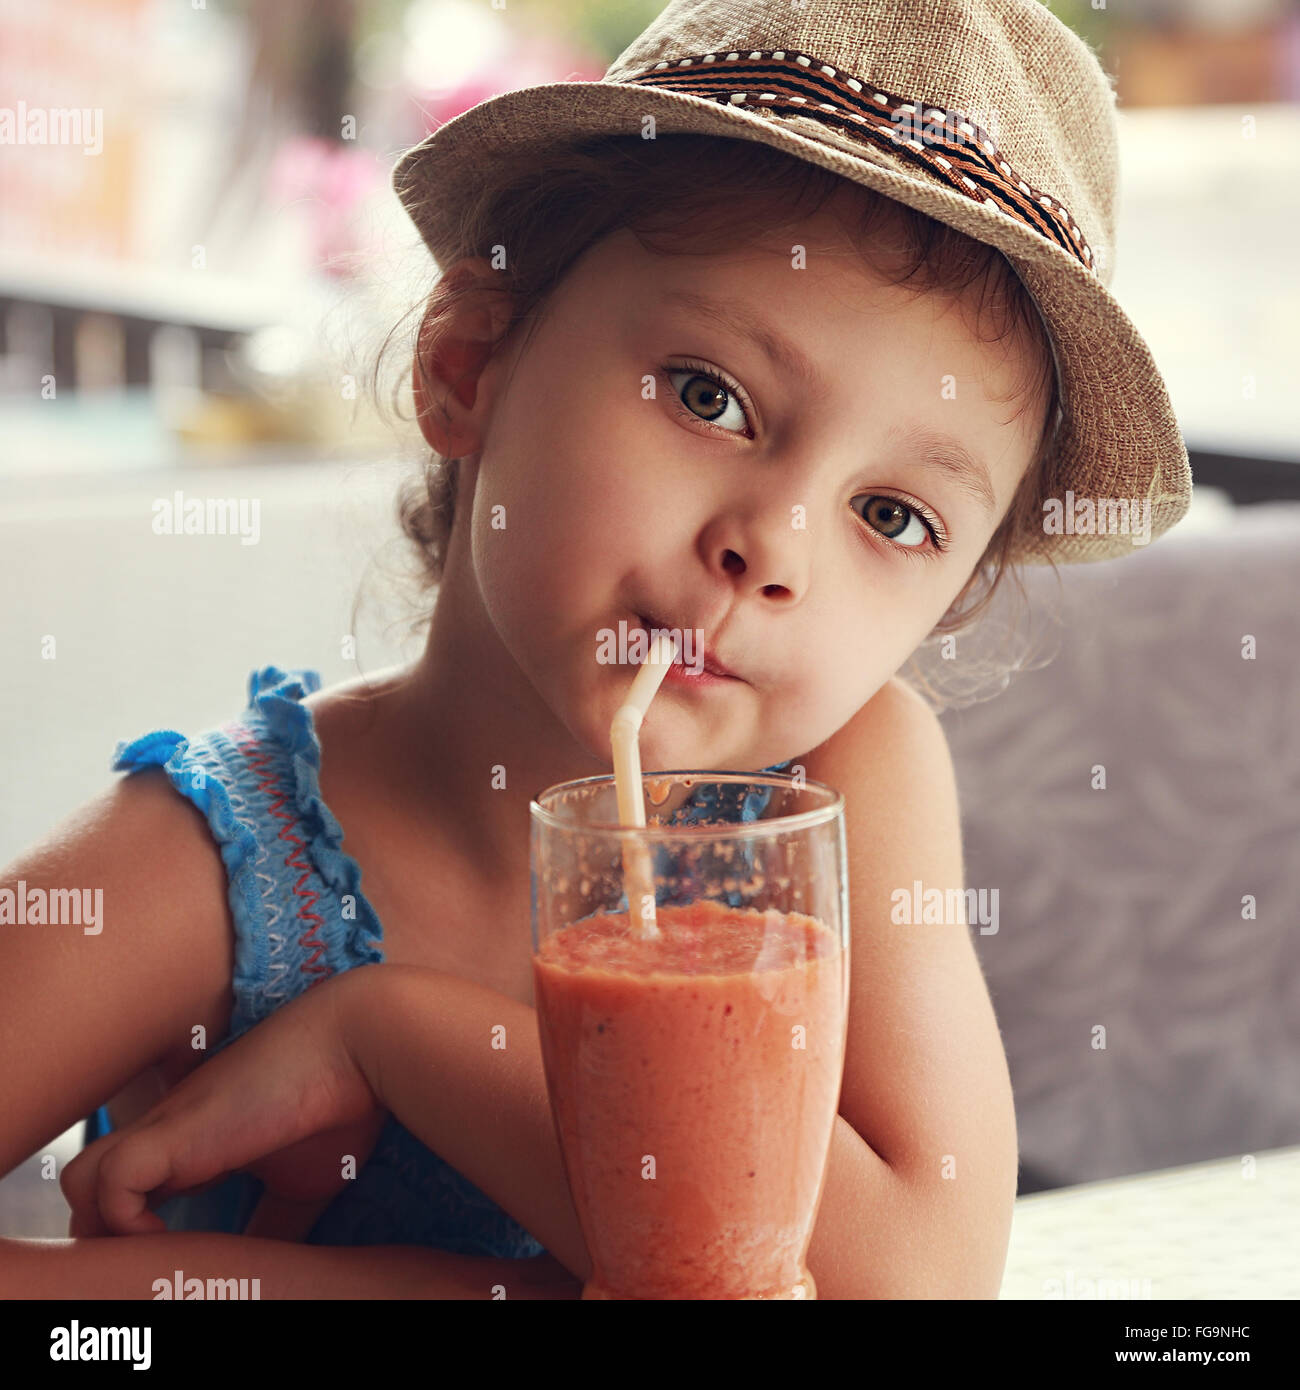 Fun cute kid girl drinking healthy smoothie juice in street restaurant. Closeup toned portrait - Stock Image